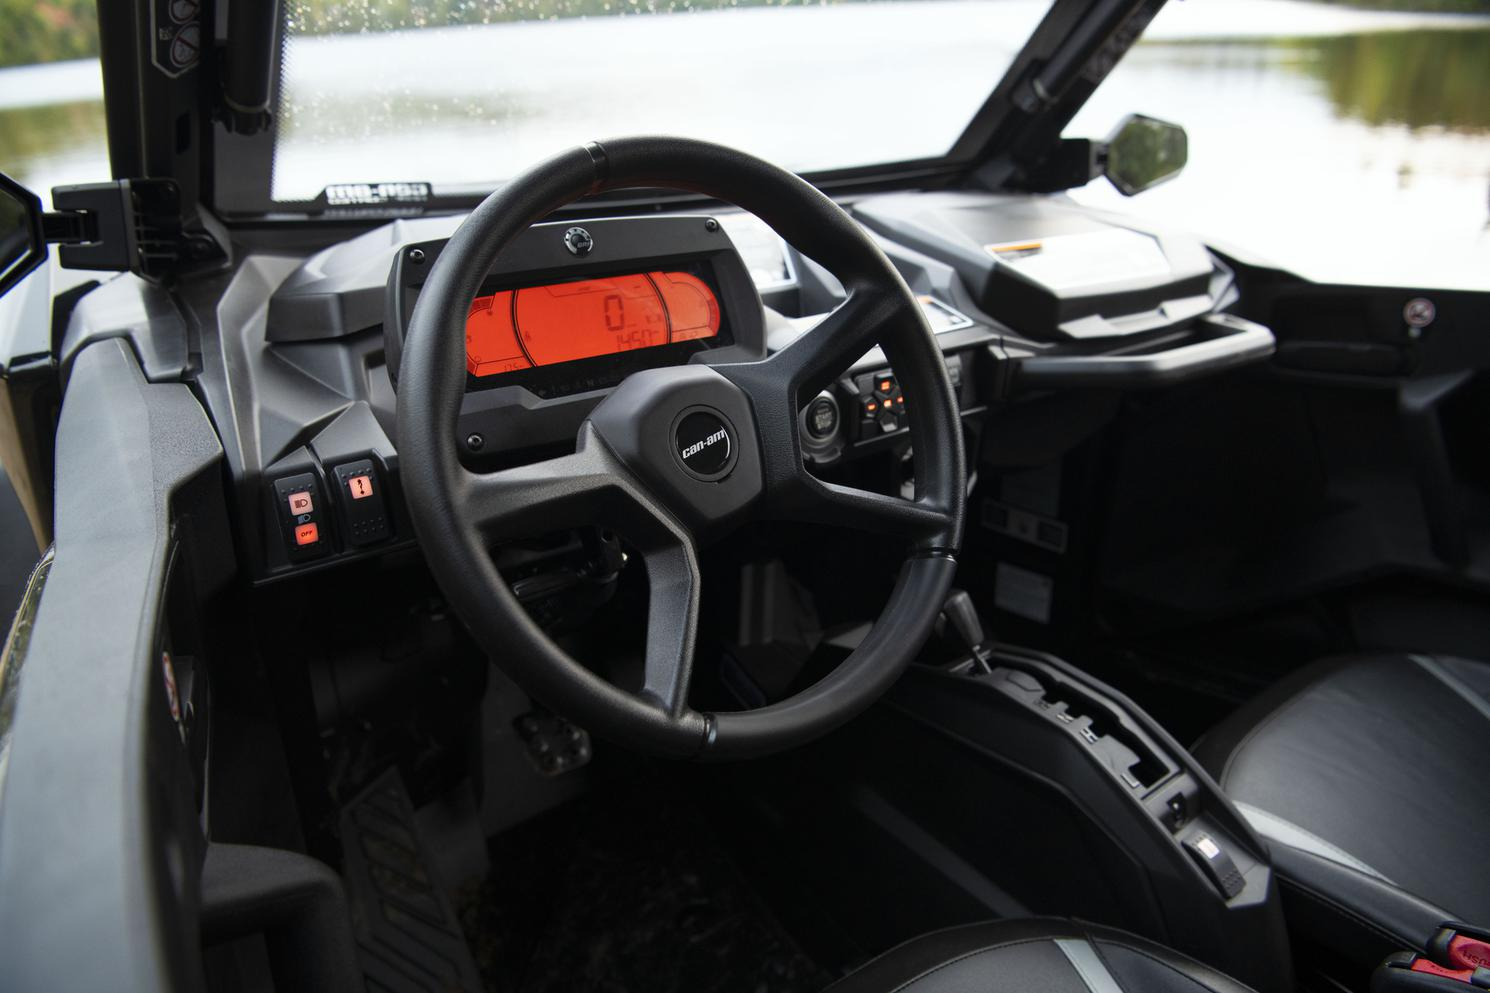 2021 Can-Am ATV boat for sale, model of the boat is COMMANDER XT 1000R & Image # 6 of 9